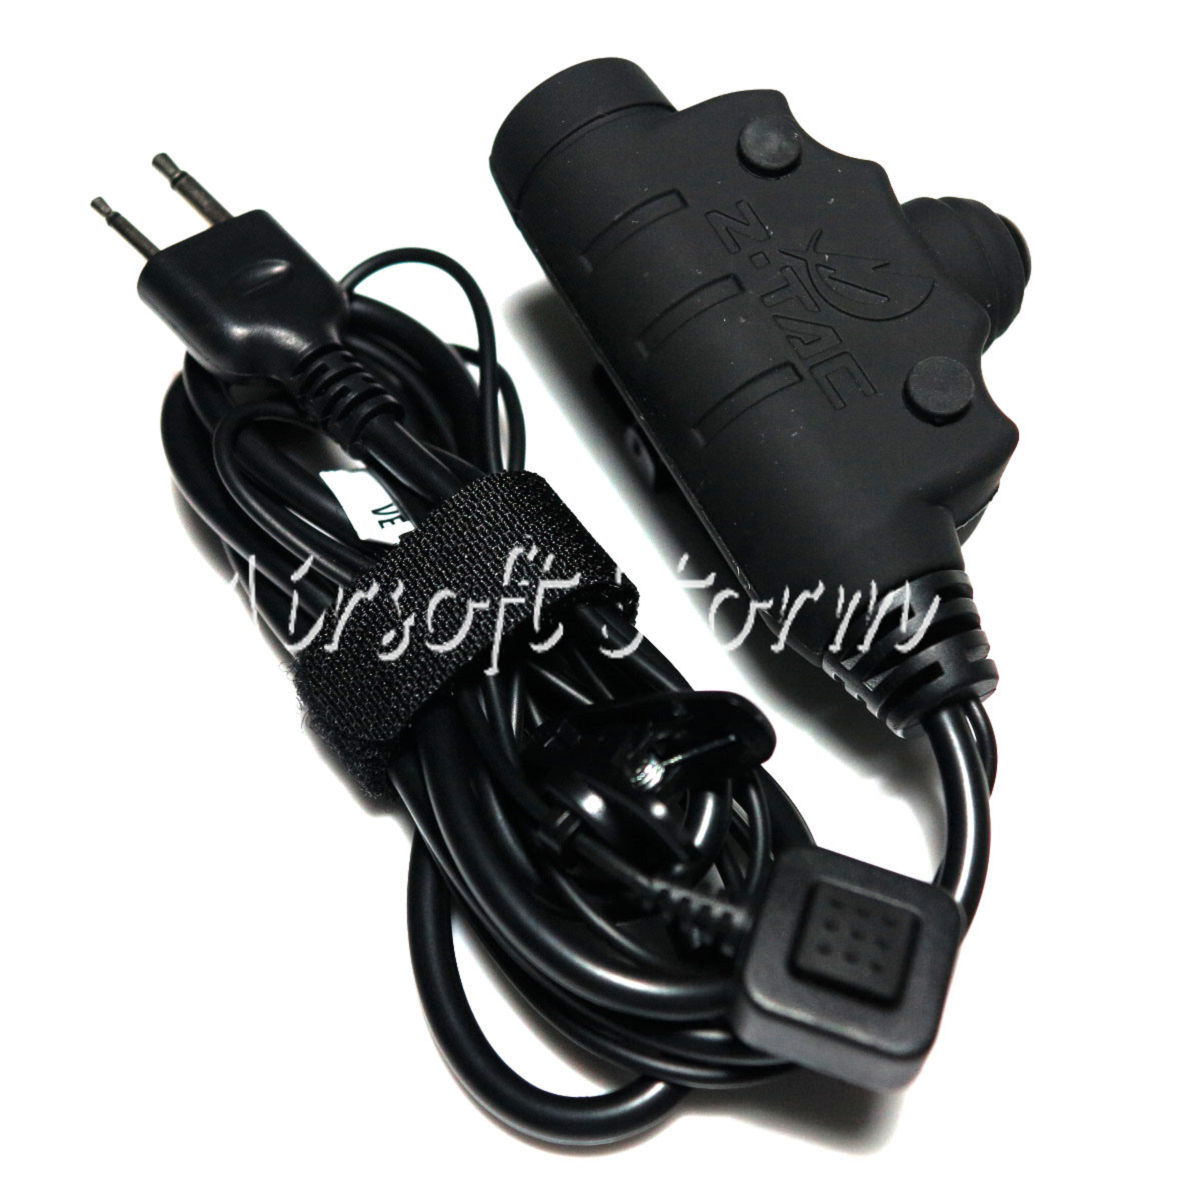 Airsoft SWAT Communications Gear Z Tactical U94 New Version Headset Cable & PTT for ICOM 2 Pin